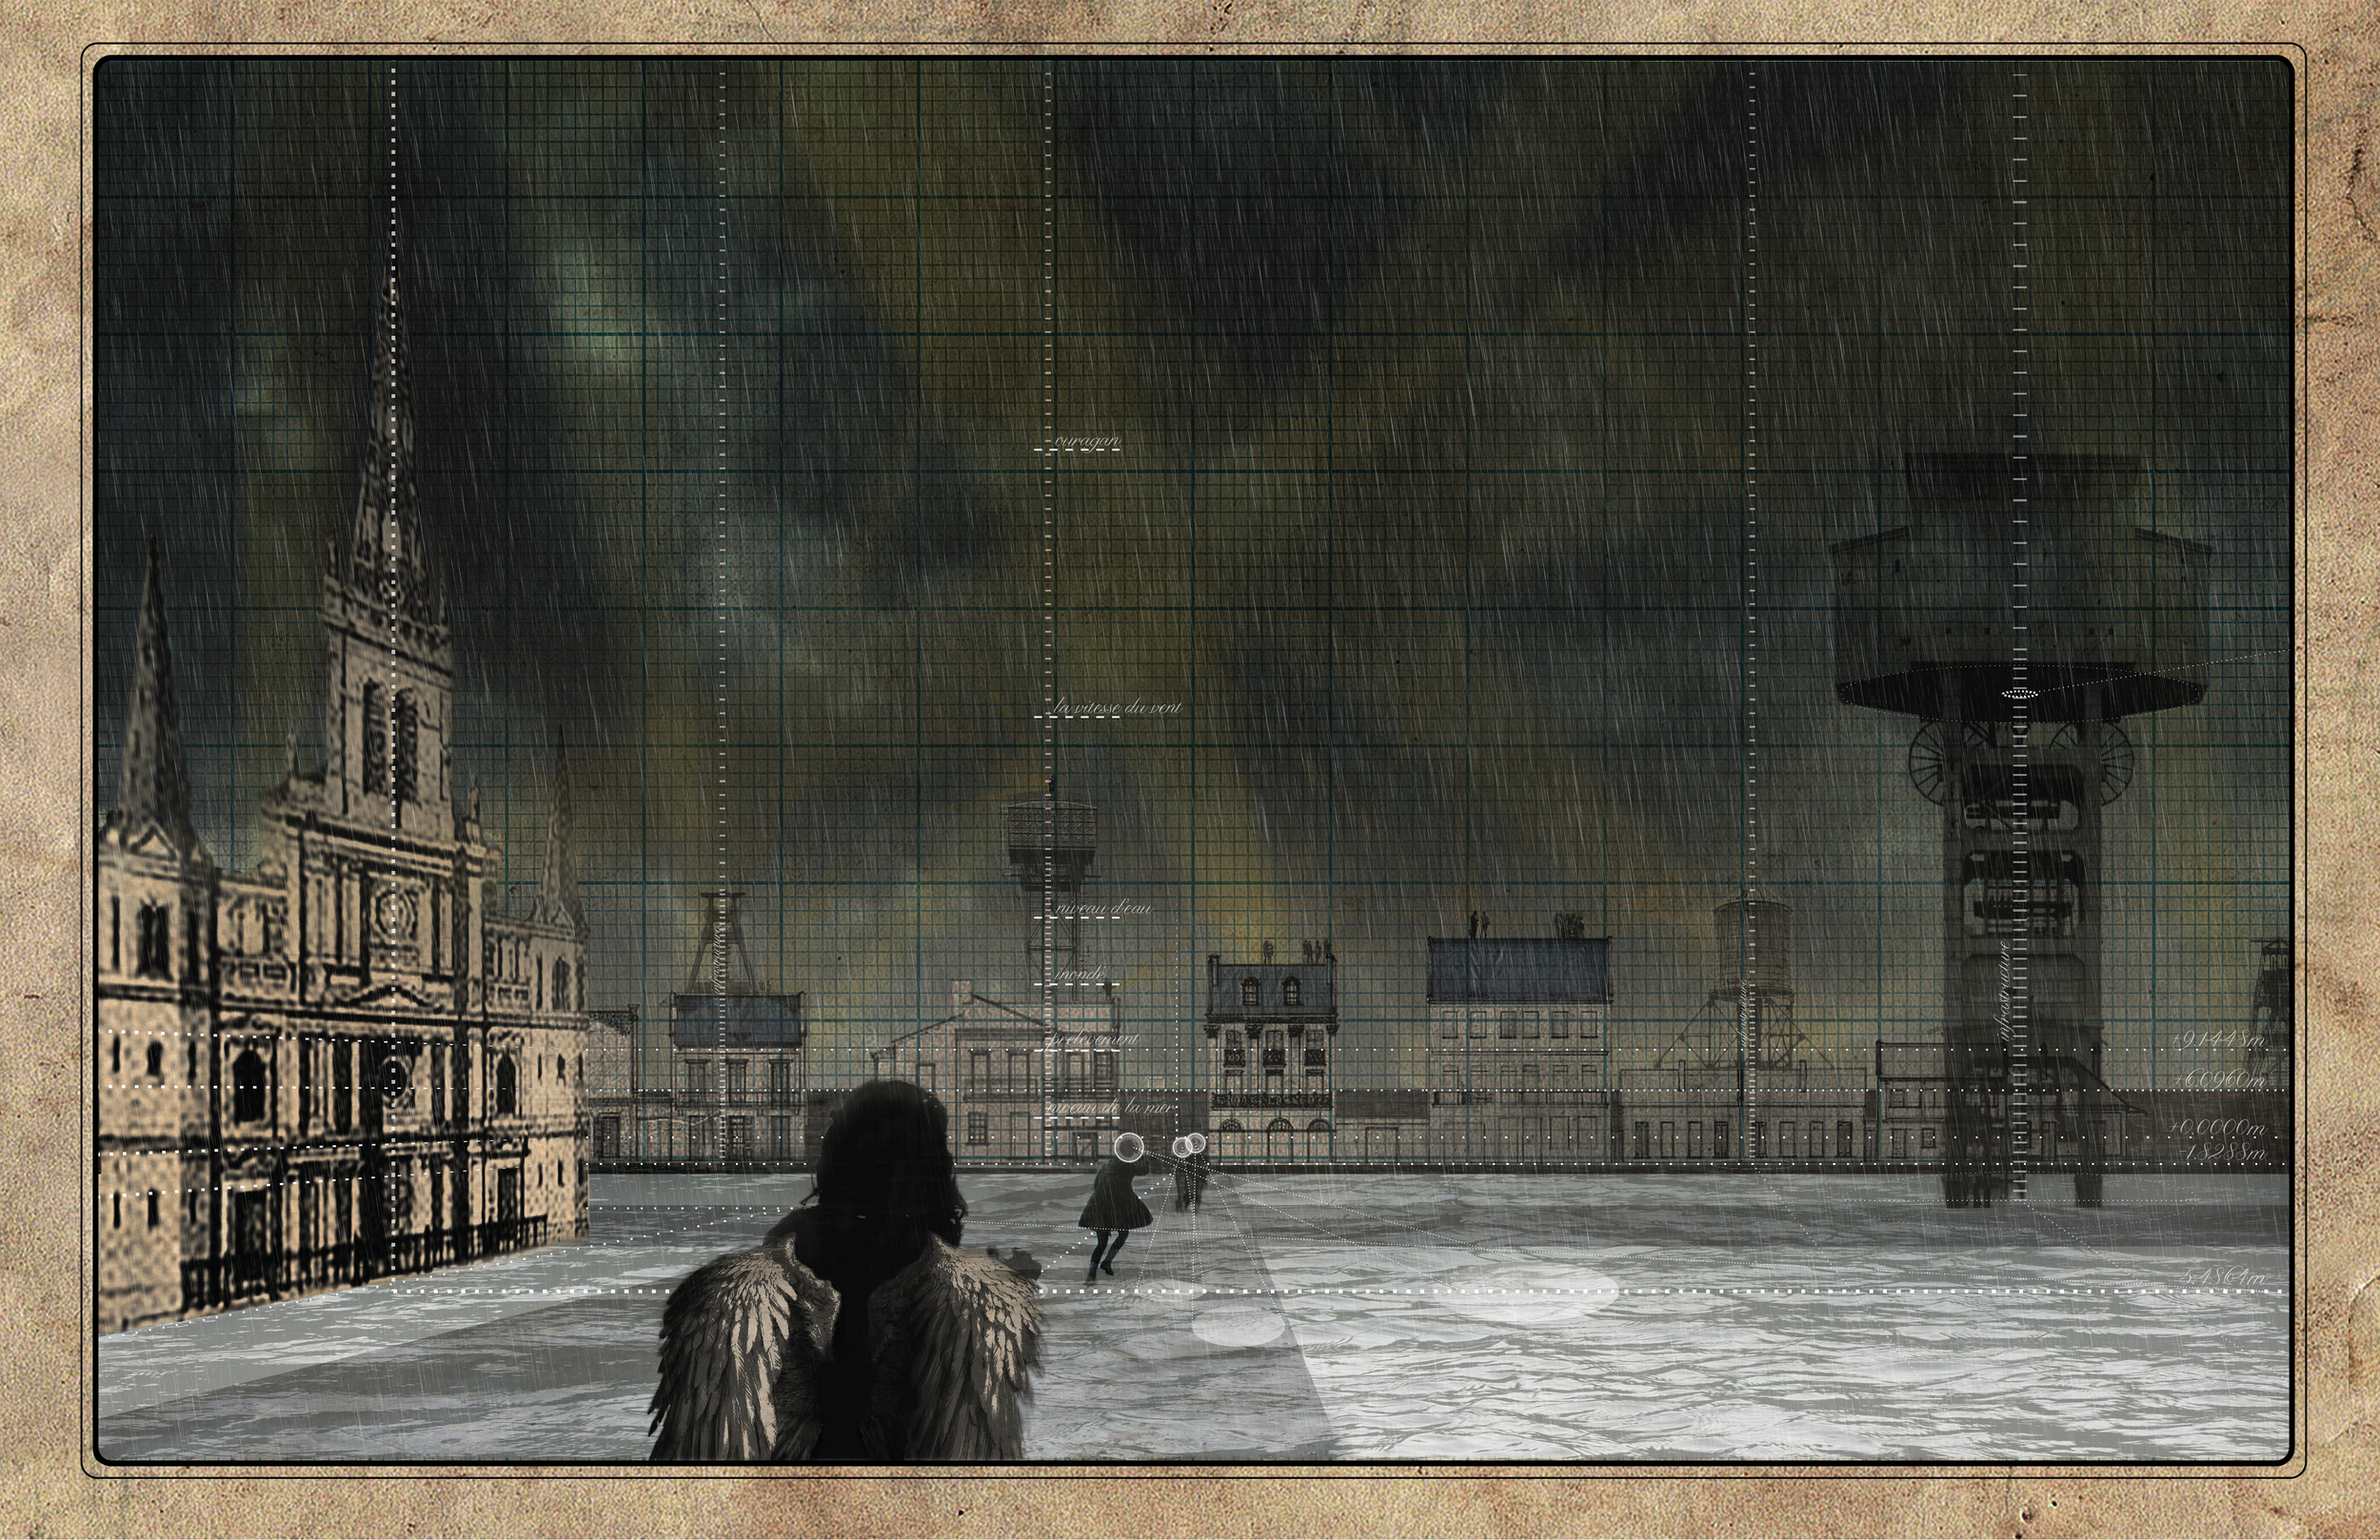 Ovala wades through the flooded city.